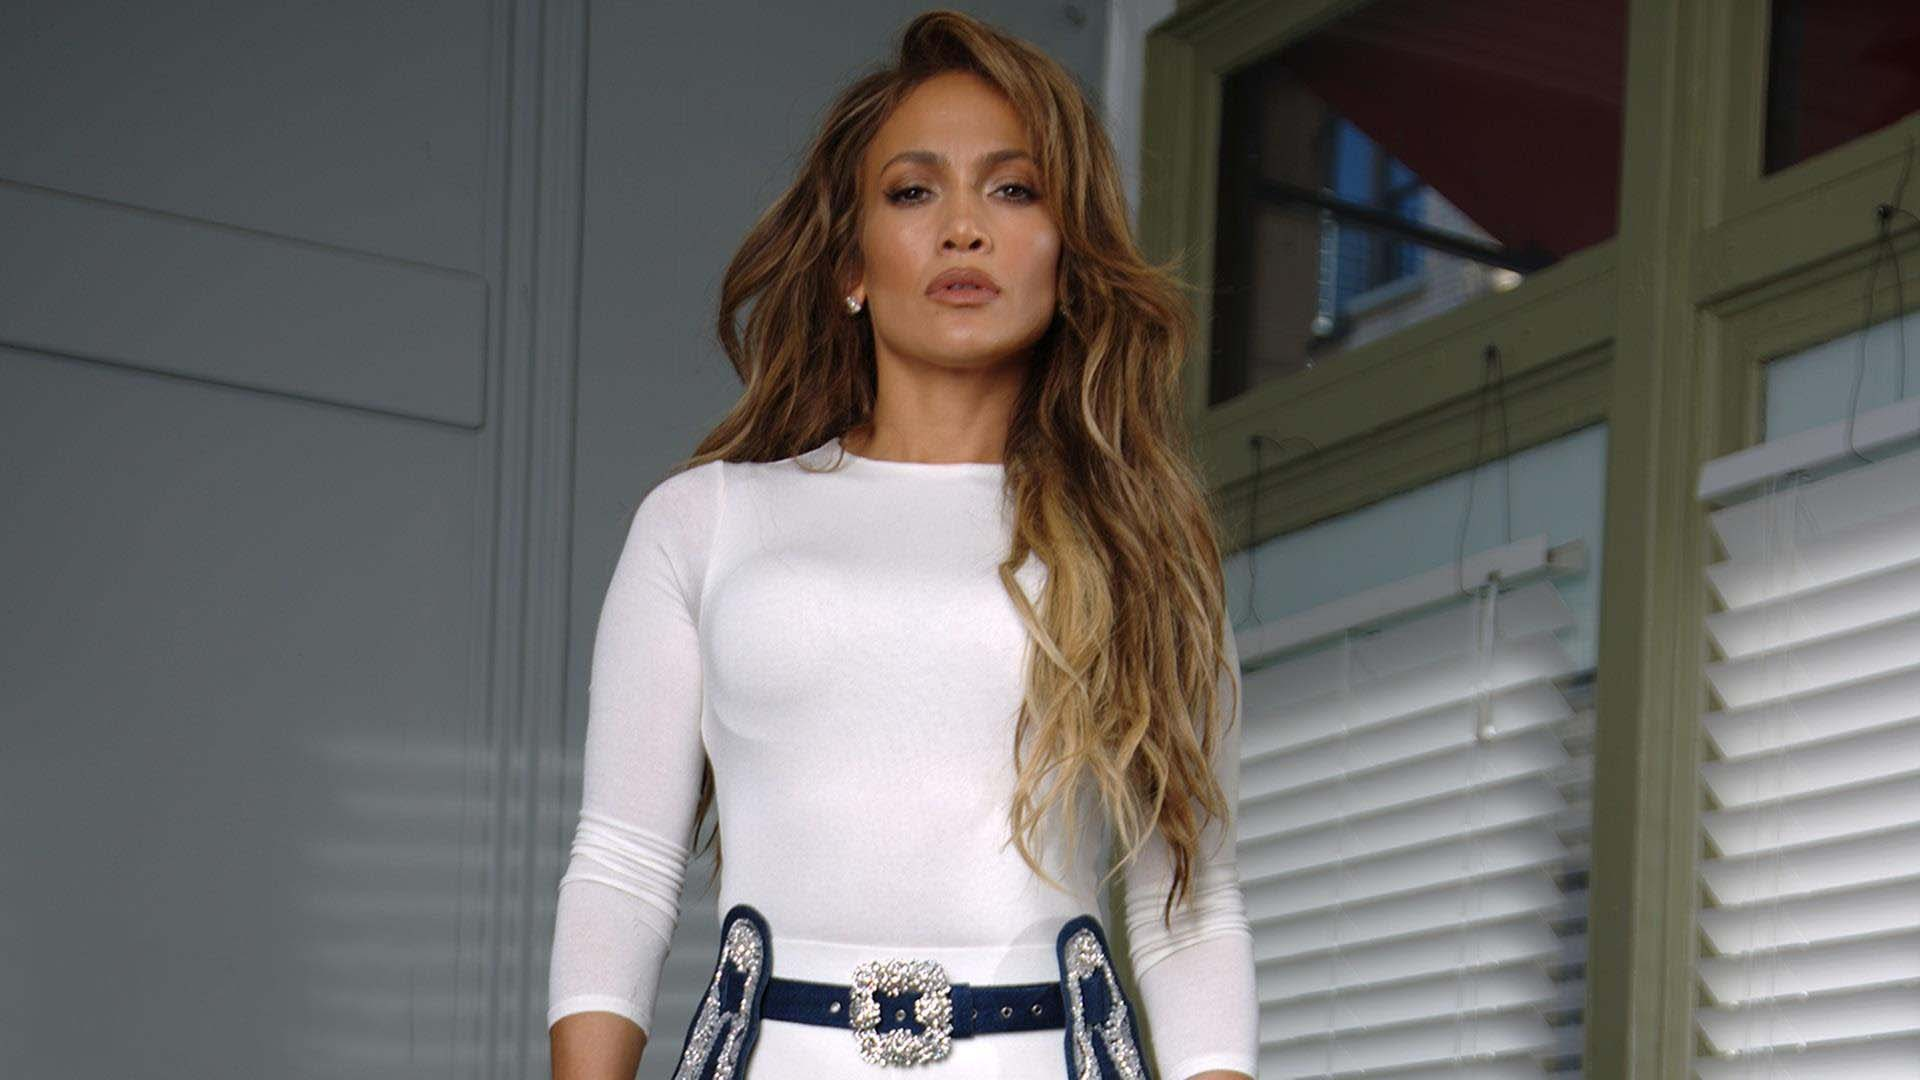 beautiful jennifer lopez image pic